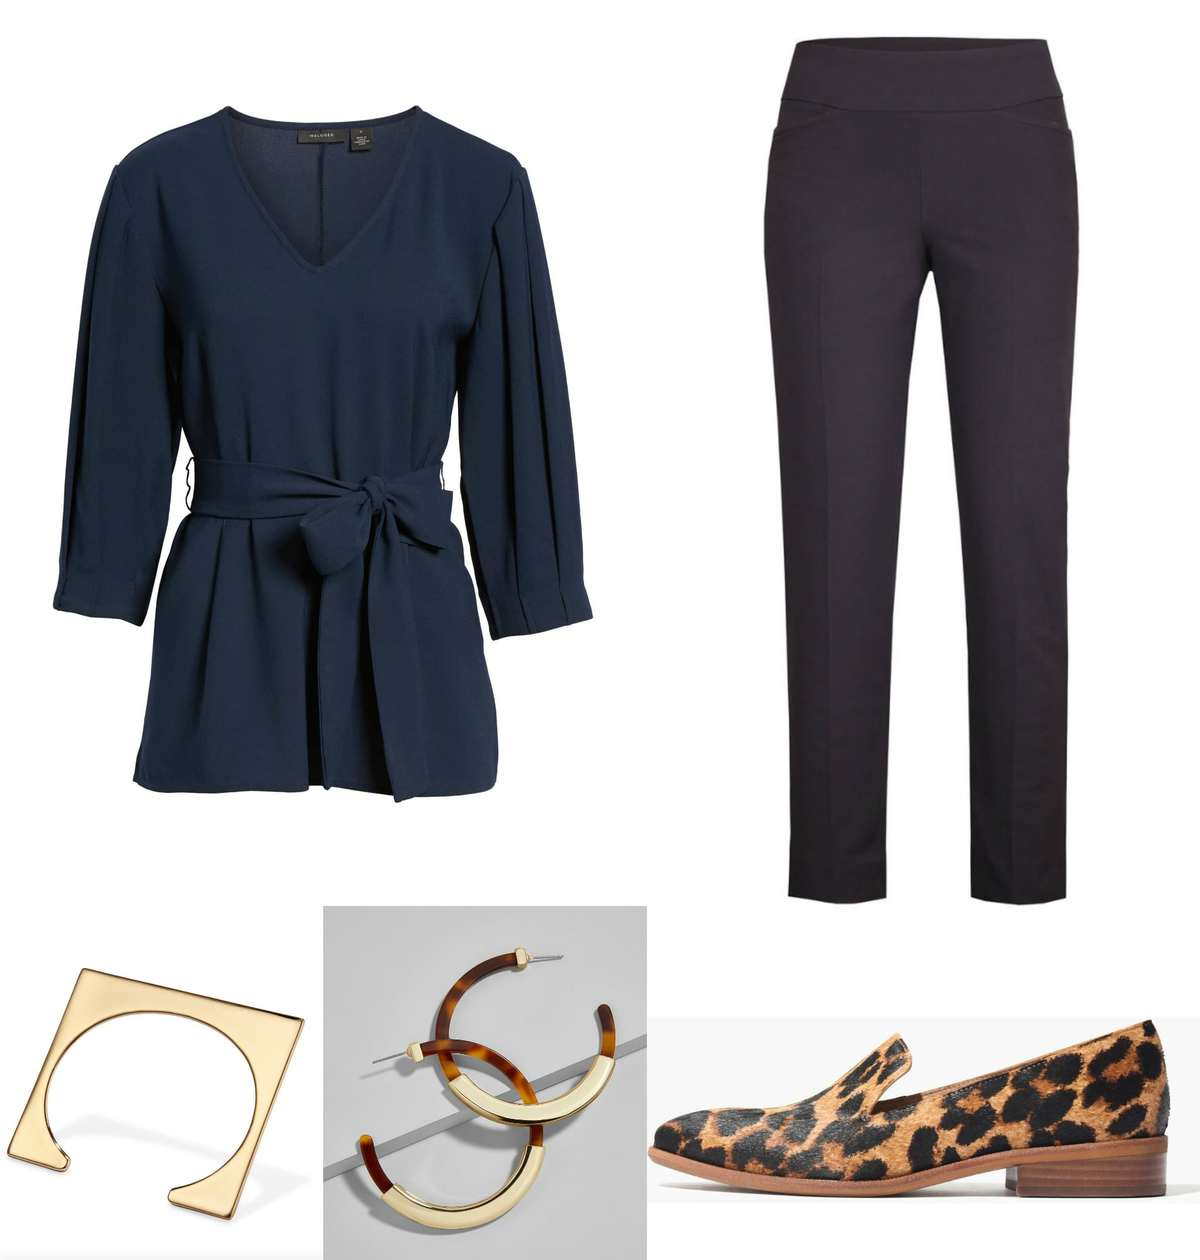 navy dress with leopard shoes